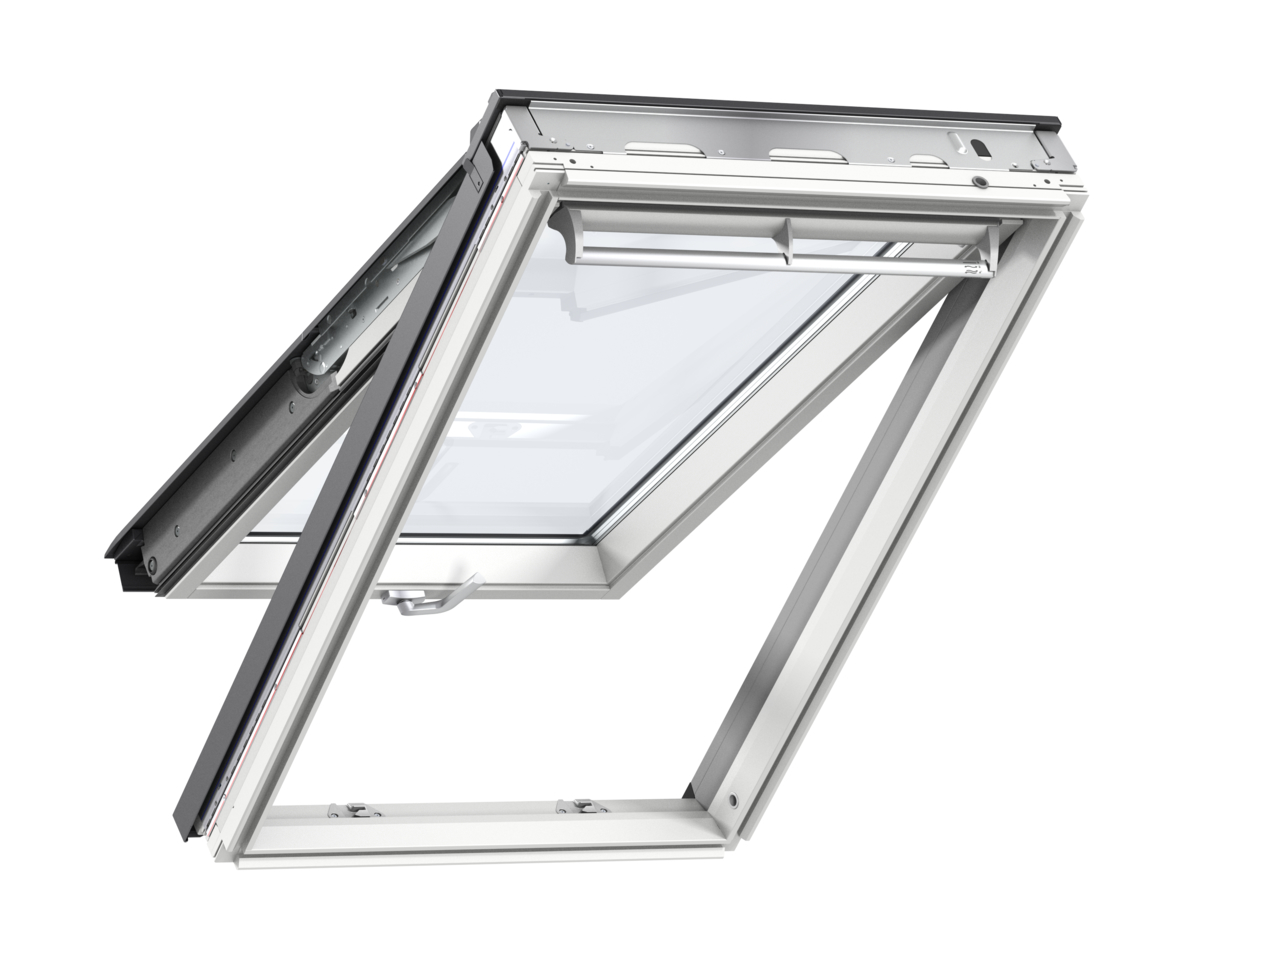 Velux GPL MK06 780 x 1180mm Top Hung 66Pane Roof Window - White Painted